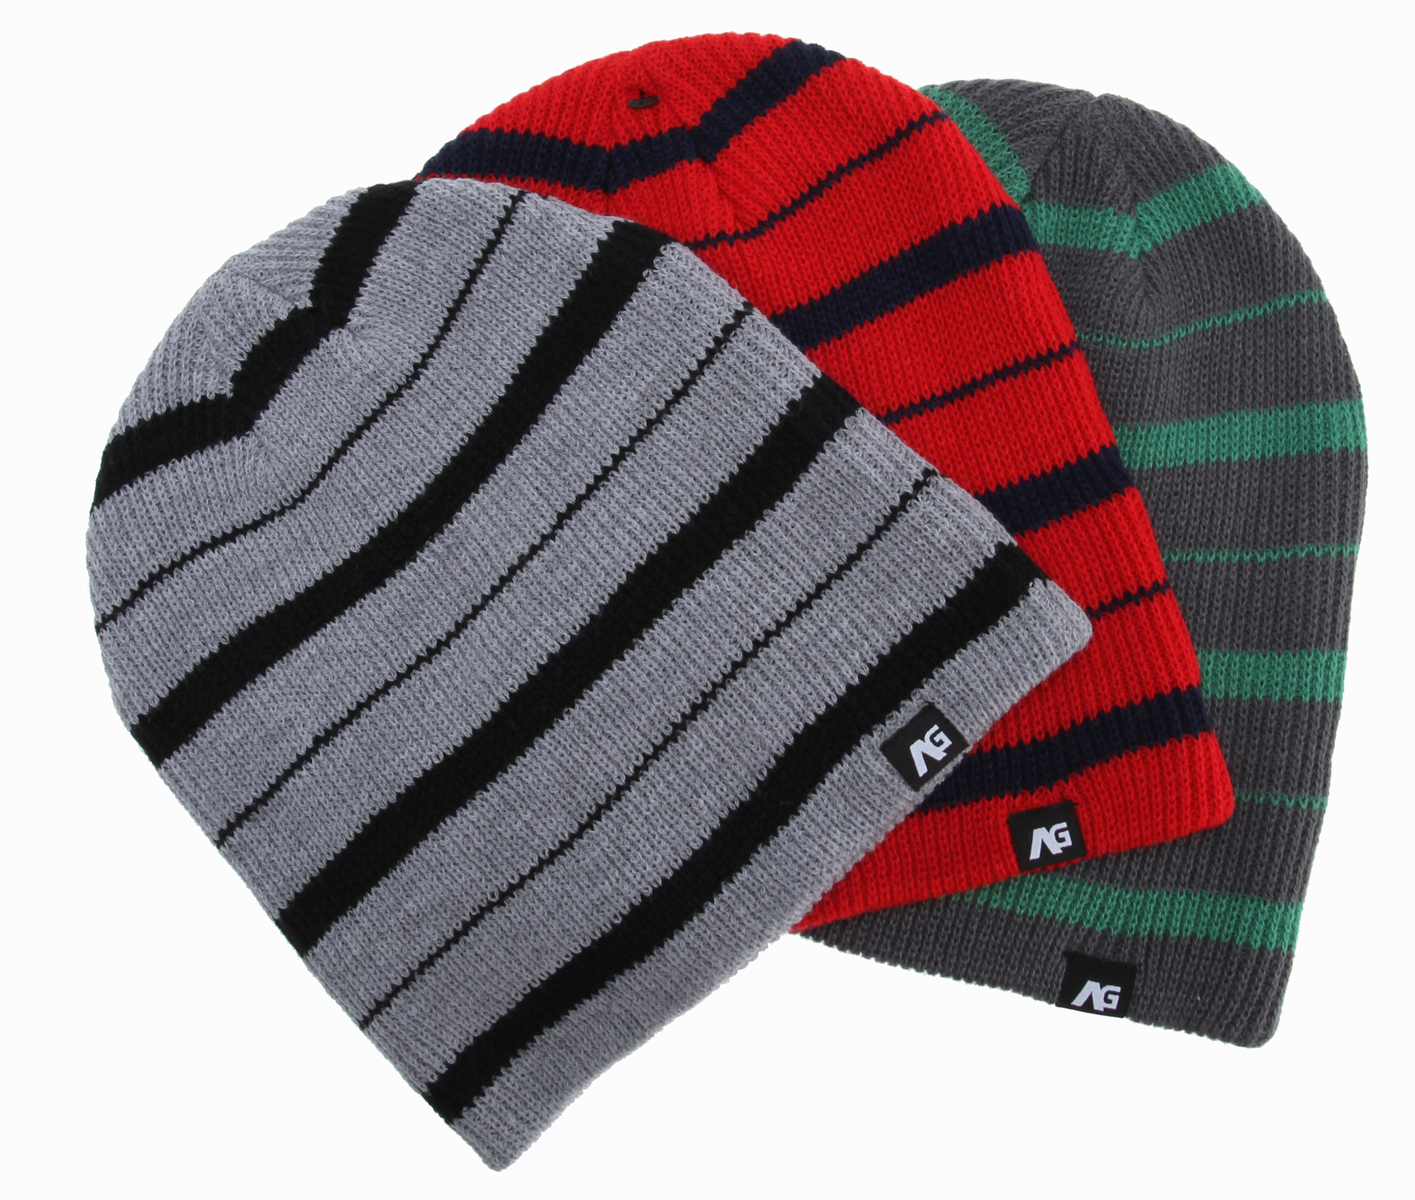 Key Features of the Analog Slouch Beanies 3 Pack: Acrylic . Striped Yarn Dye Multi-Color 3 Pack. Slouch Fit - $28.00